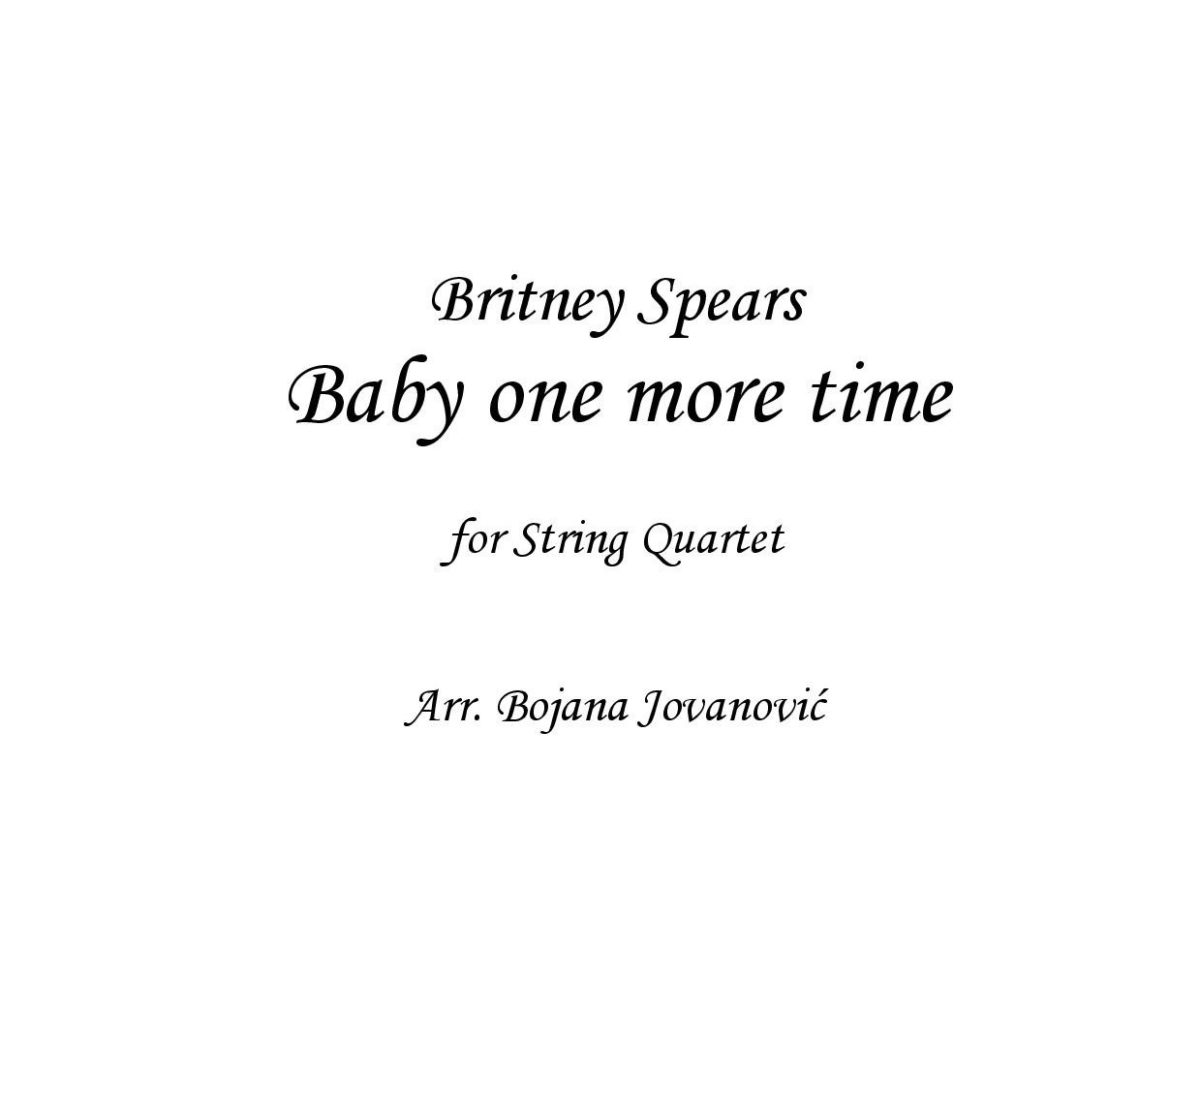 Baby ne more time (Britney Spears) - Sheet Music